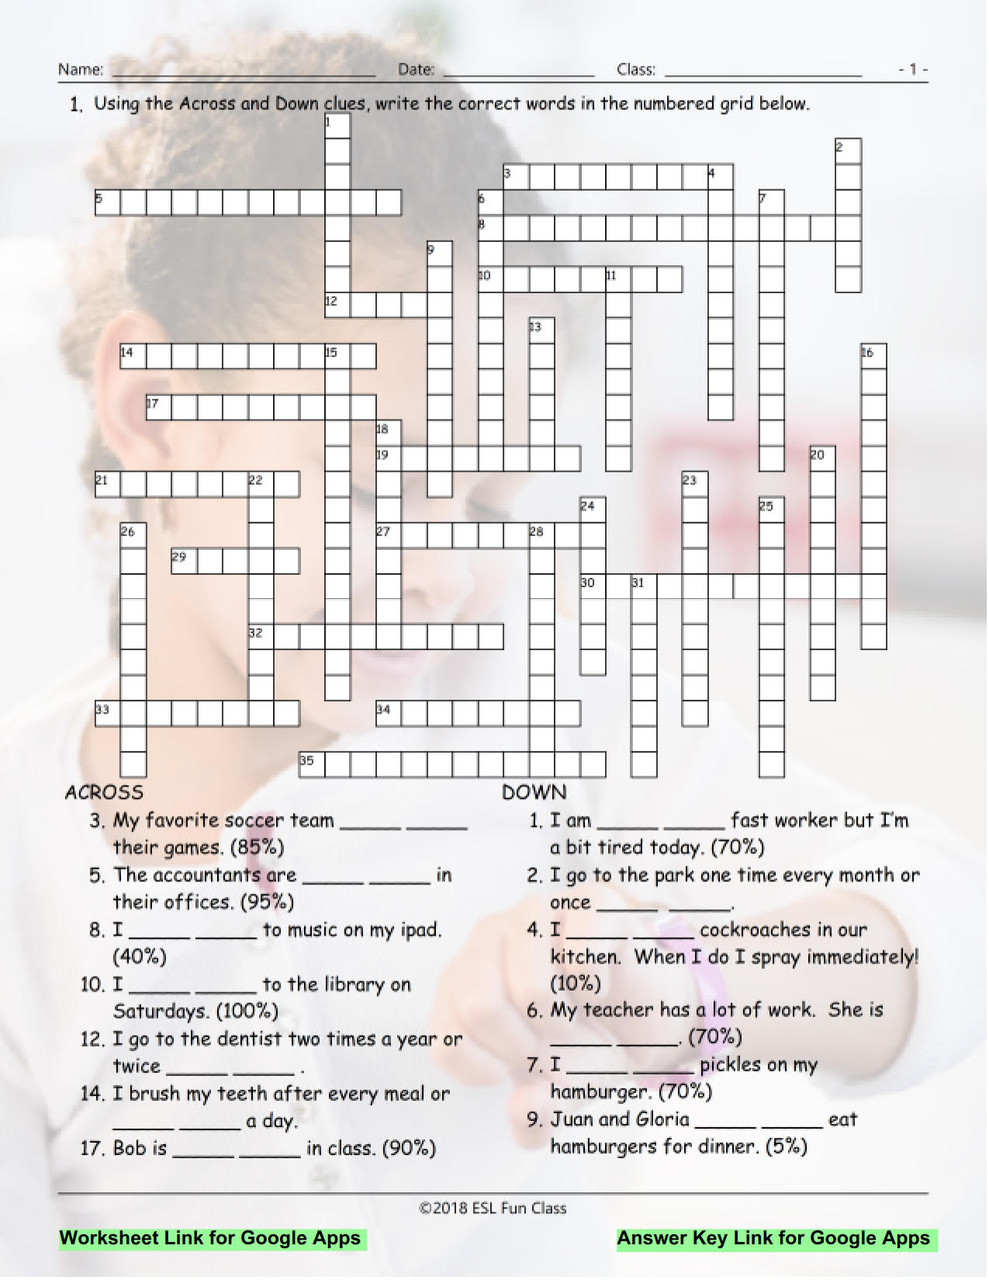 small resolution of Frequency Adverbs-Time Expressions Interactive Crossword Puzzle for Google  Apps LINKS - Amped Up Learning